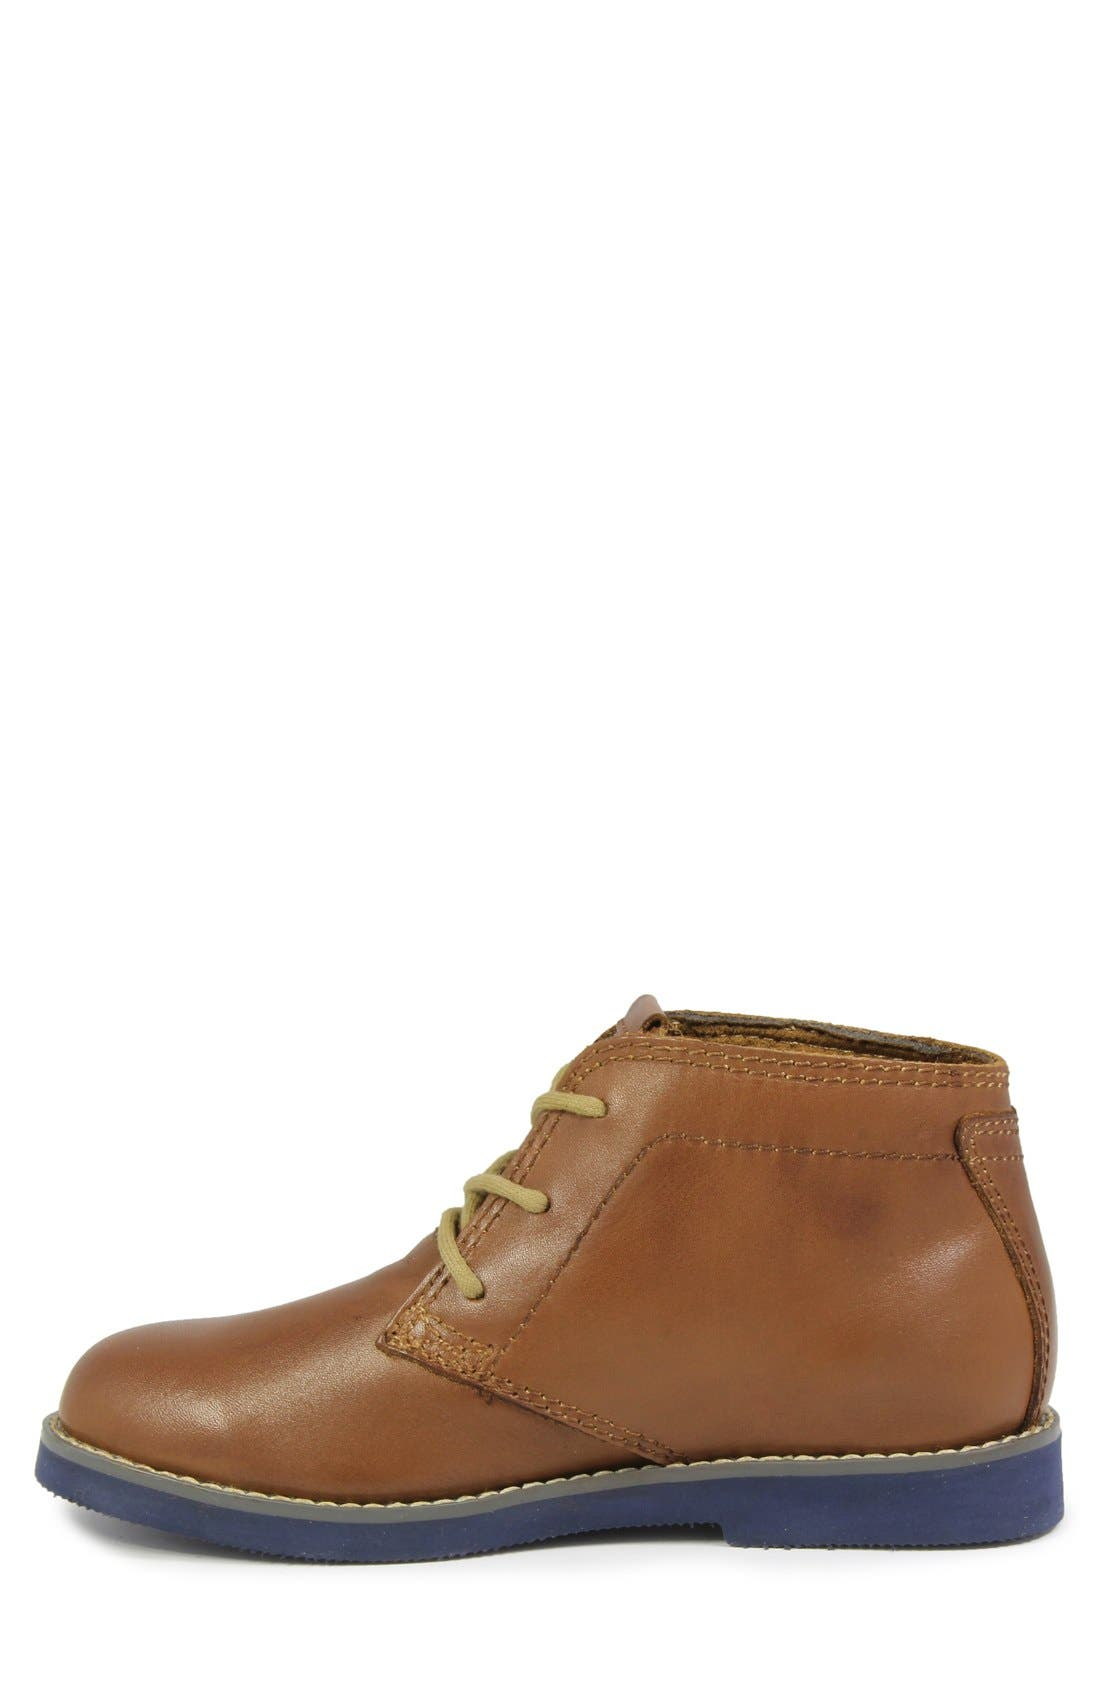 'Bucktown' Chukka Boot,                             Alternate thumbnail 6, color,